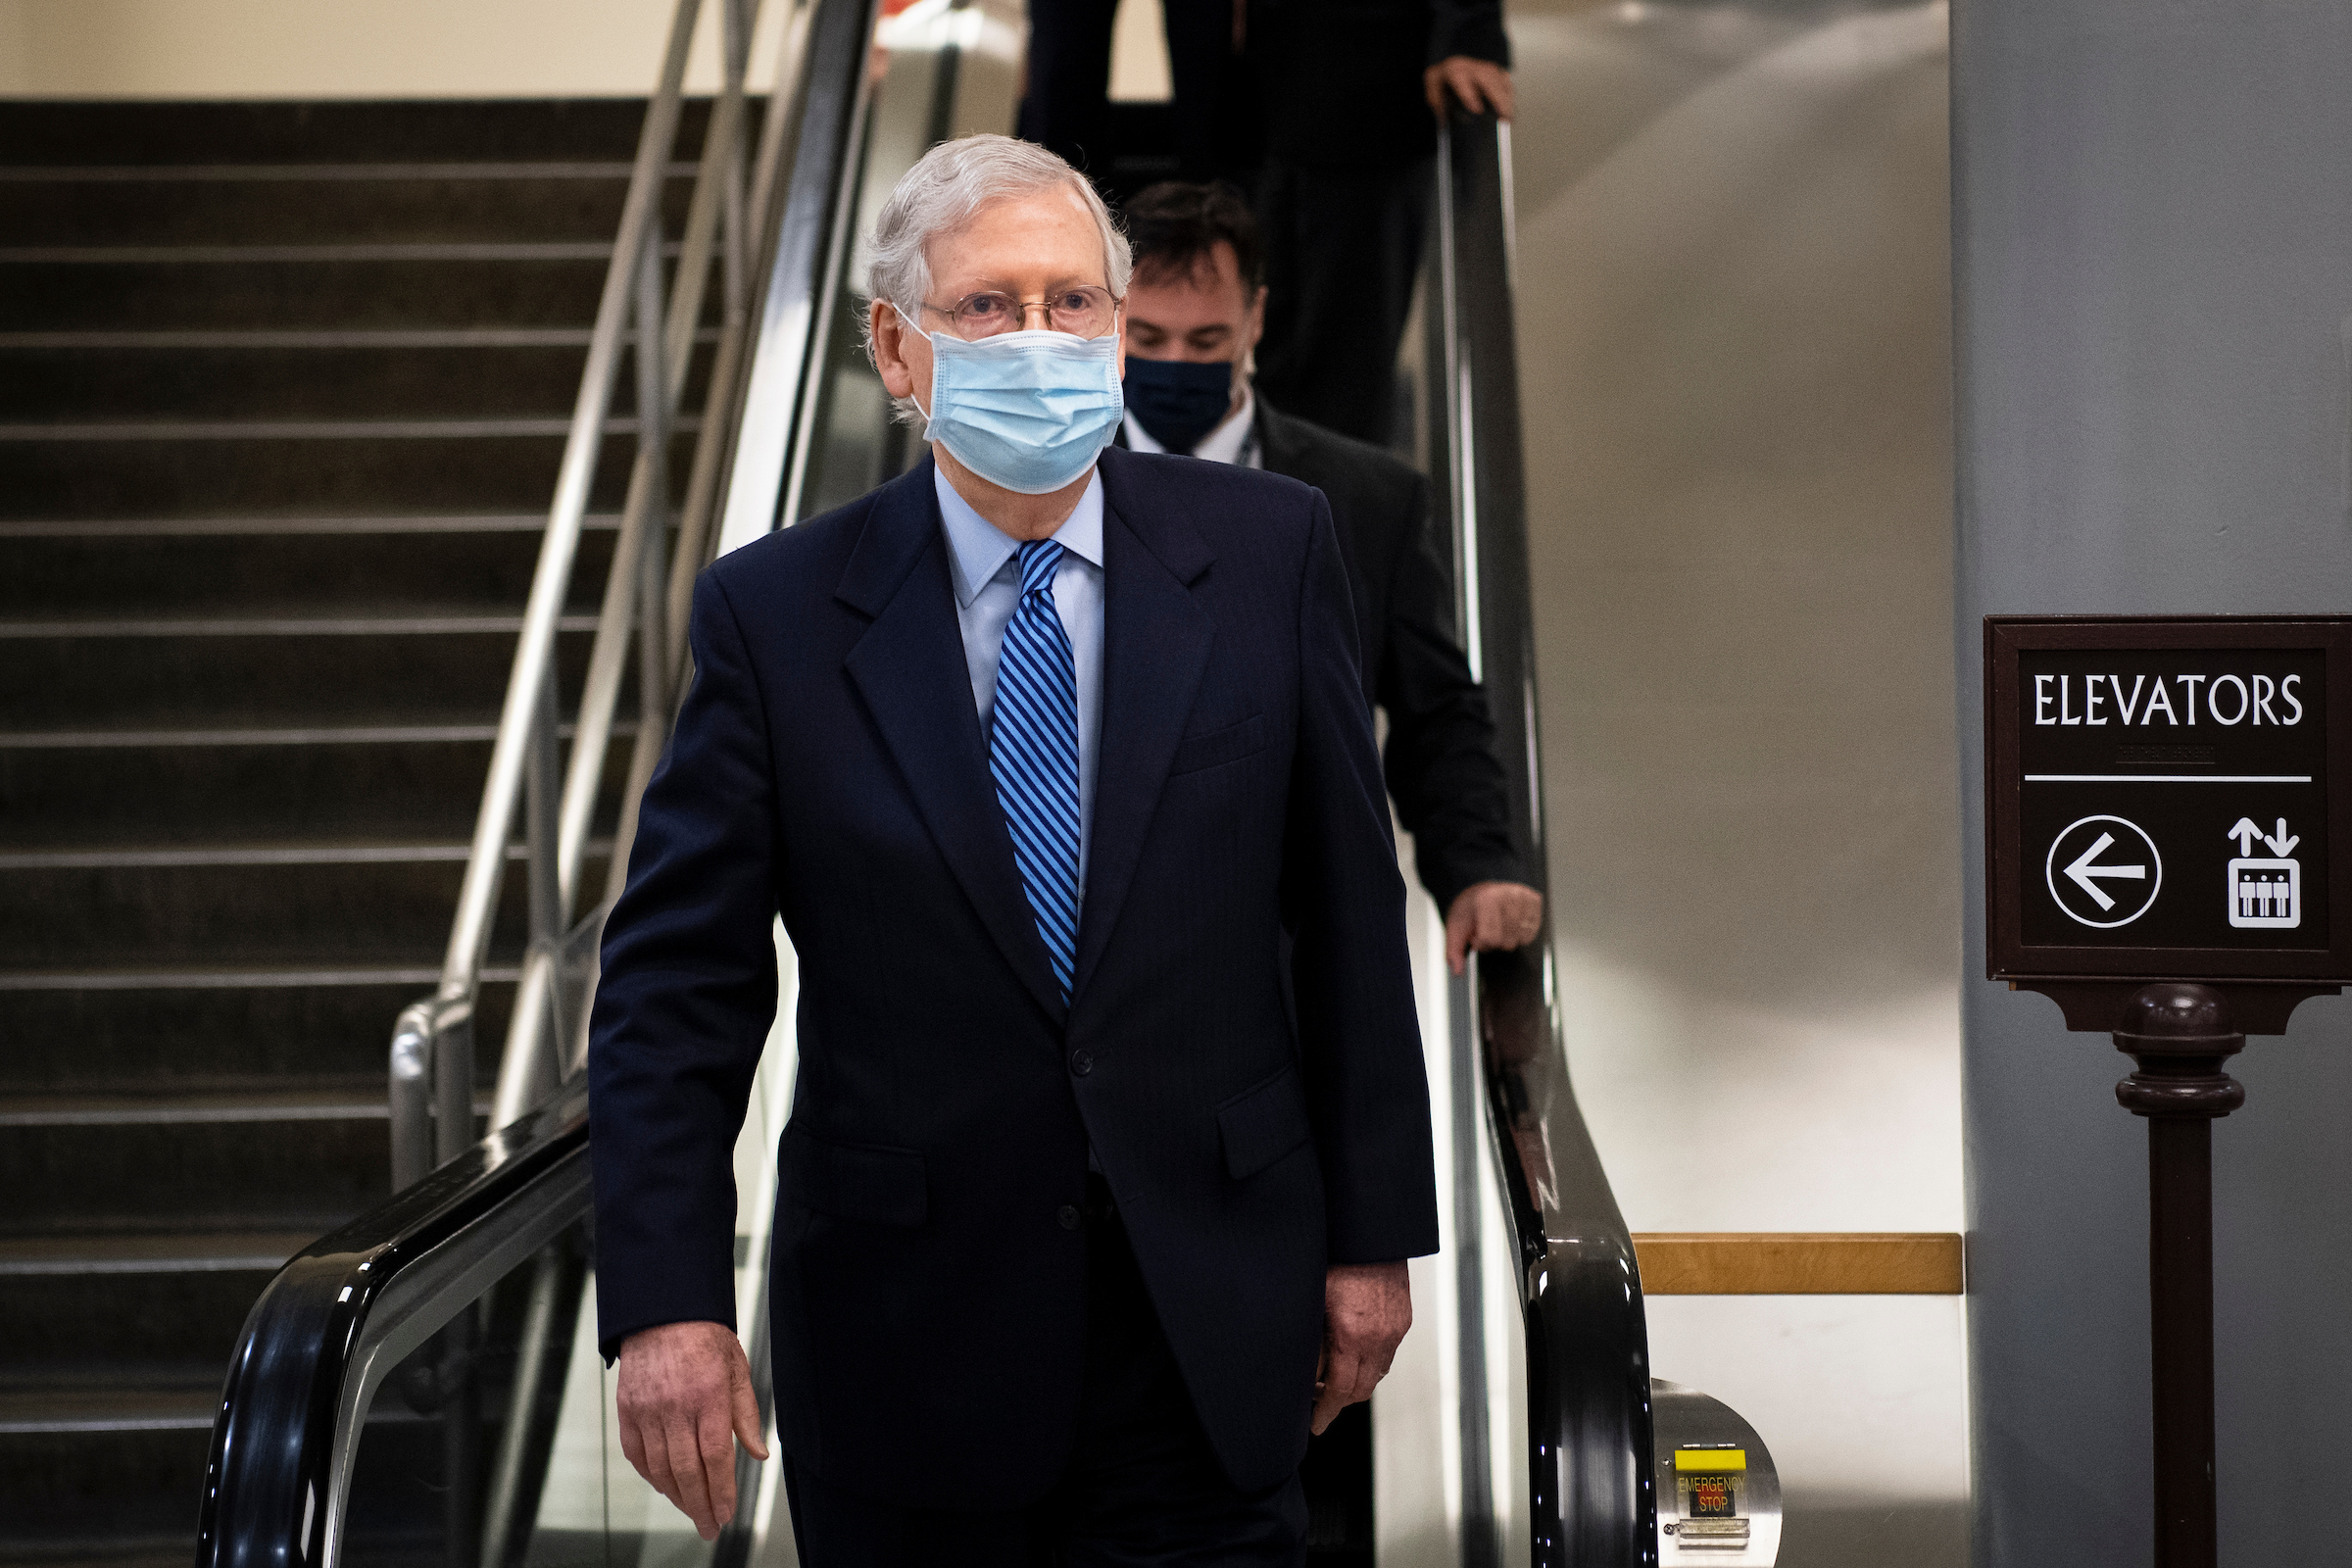 Senator McConnell with a mask on